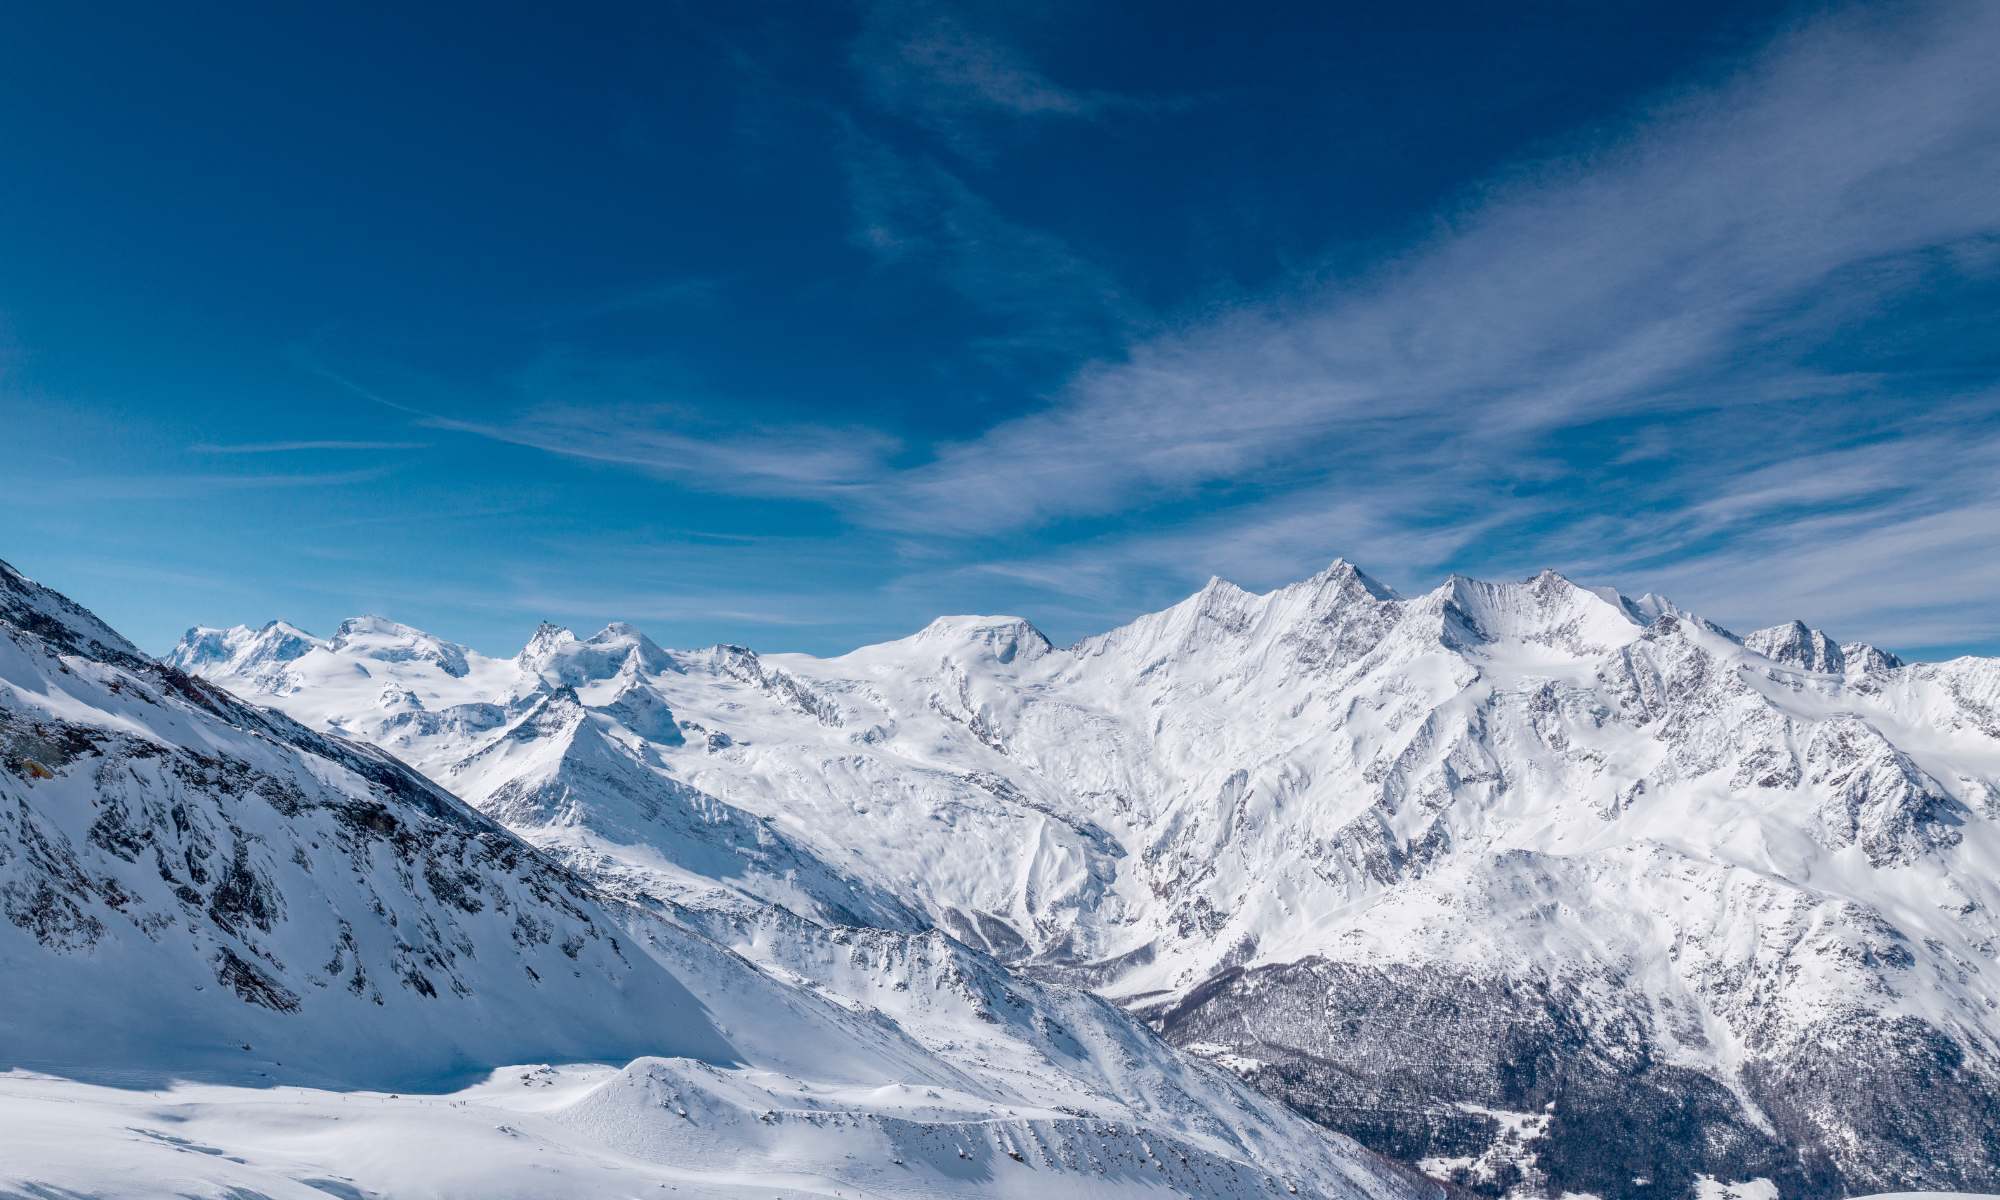 Destination Saas-Fee/Saastal Winter 2019/20